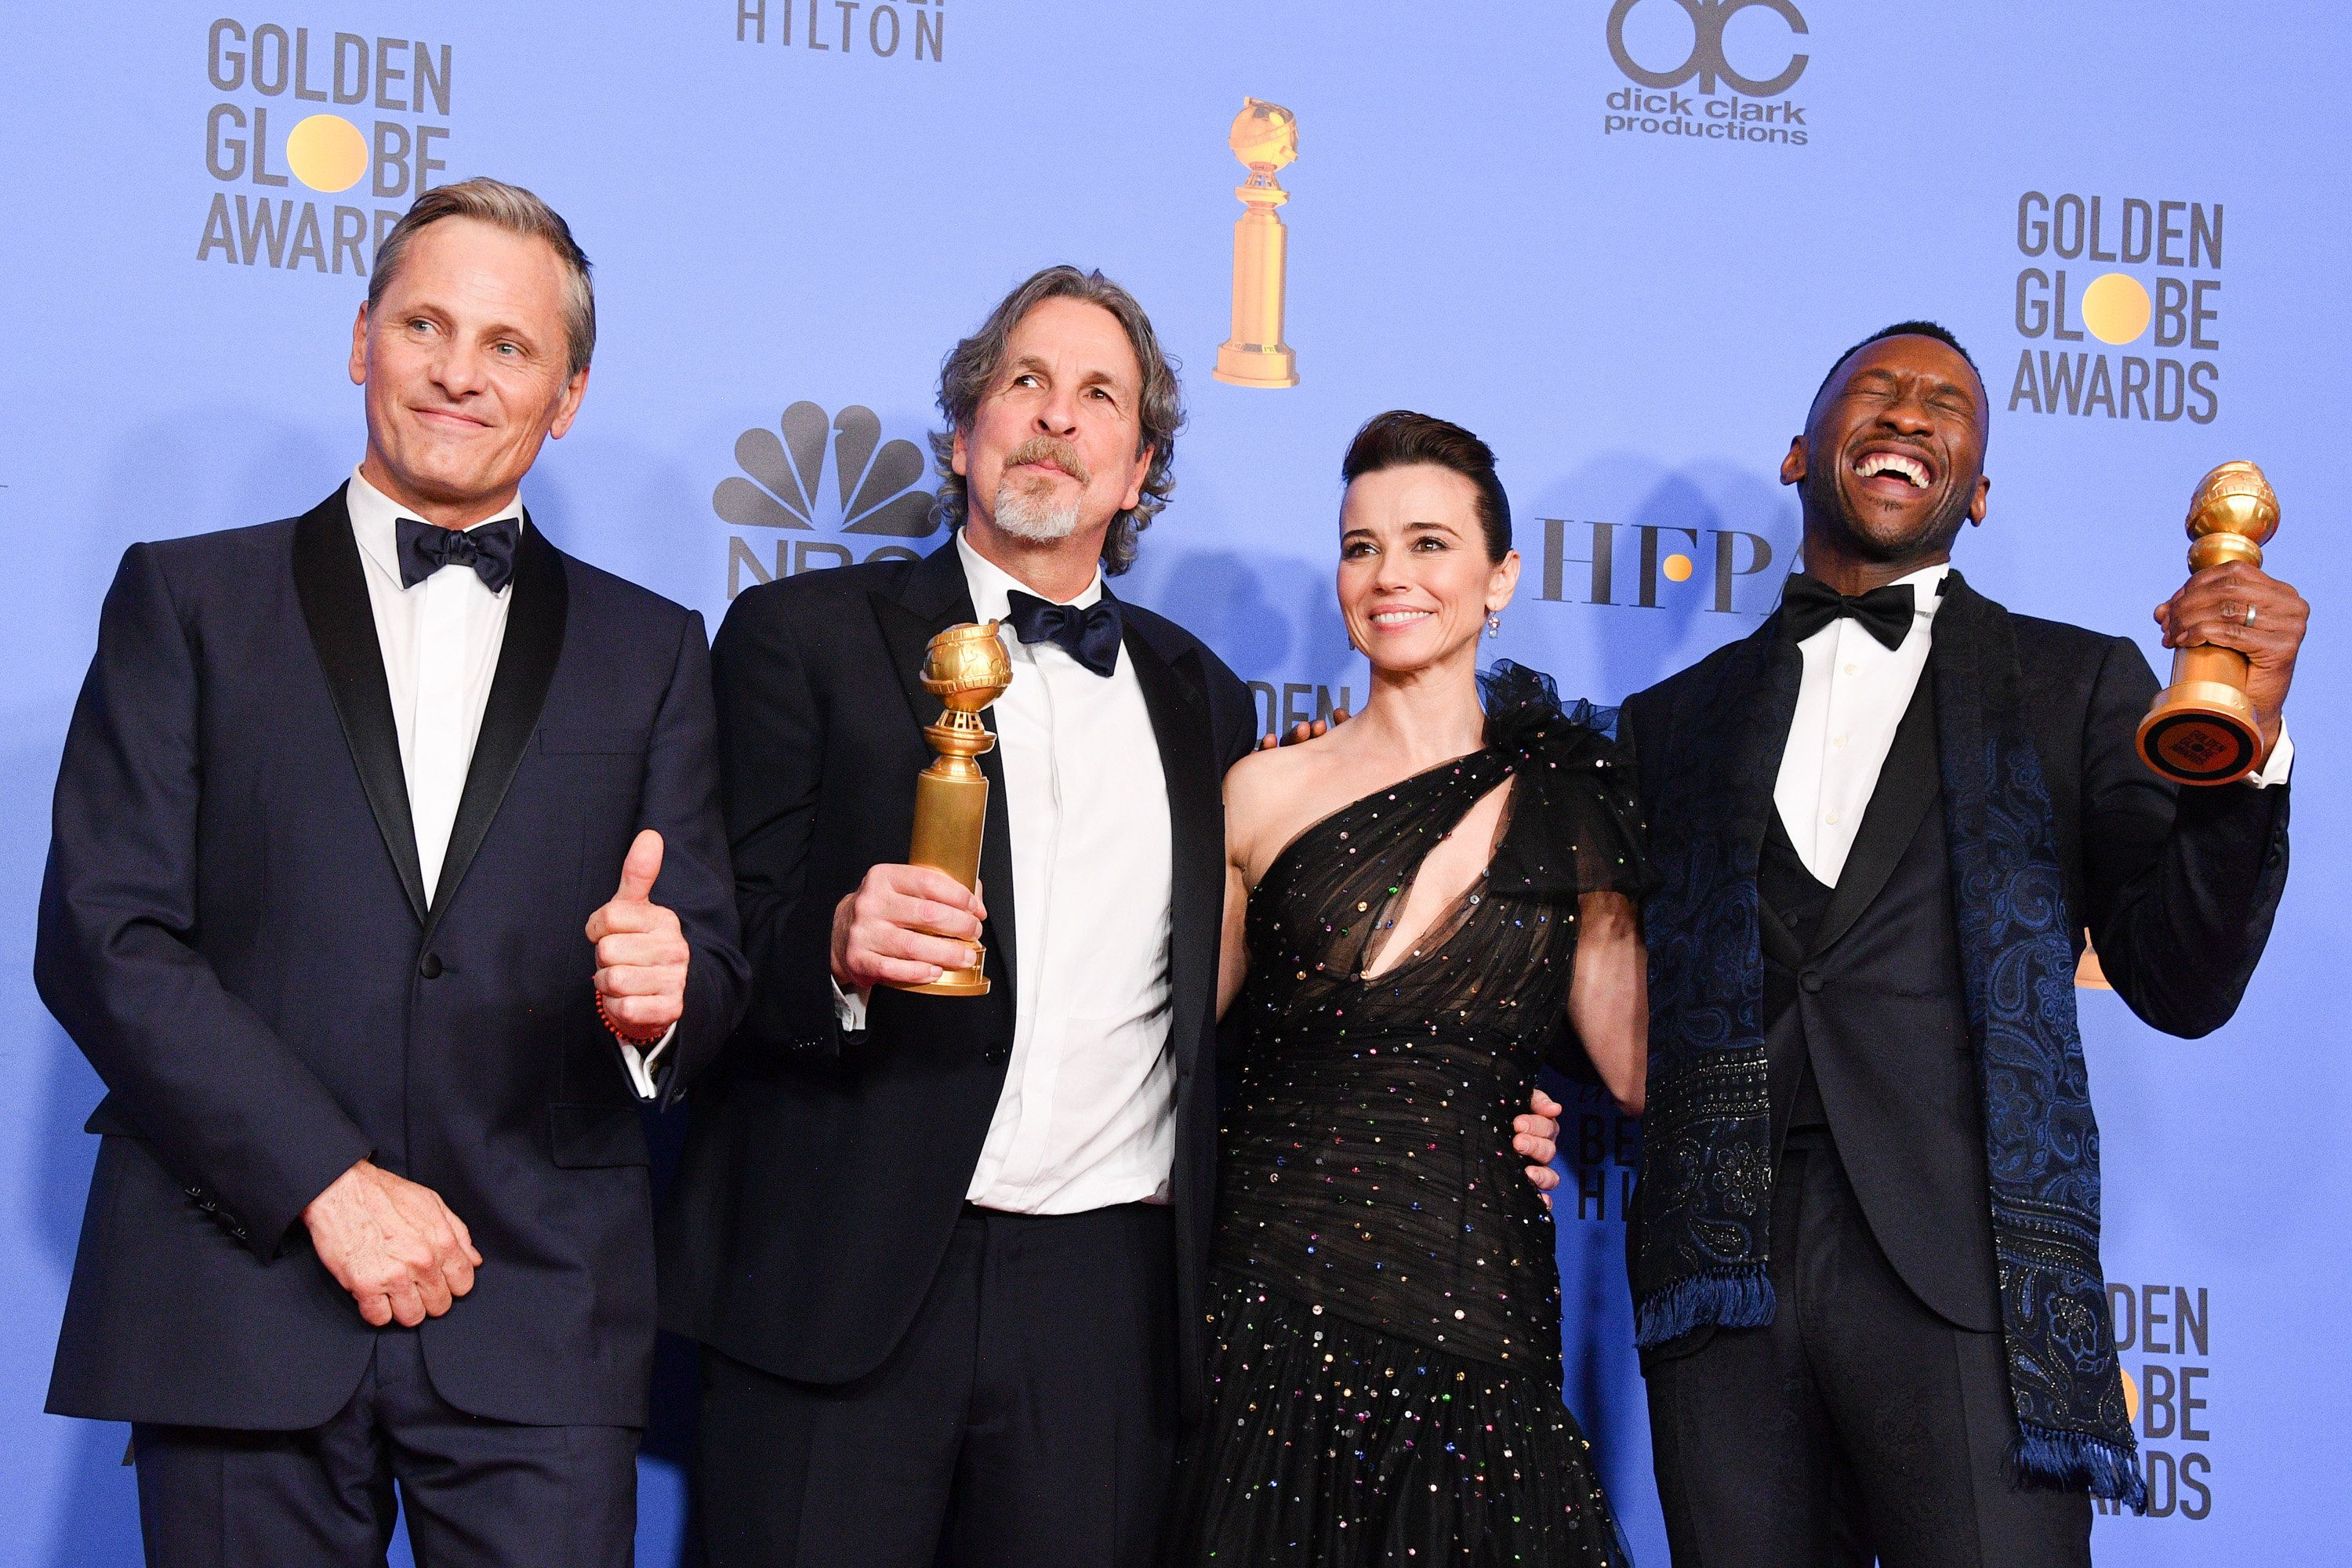 BEVERLY HILLS, CALIFORNIA - JANUARY 06: Best Motion Picture, Musical or Comedy, award for 'Green Book' winners (L-R) Viggo Mortensen, Peter Farrelly, Linda Cardellini and Mahershala Ali pose in the press room during the 75th Annual Golden Globe Awards held at The Beverly Hilton Hotel on January 06, 2019 in Beverly Hills, California. (Photo by George Pimentel/WireImage,)